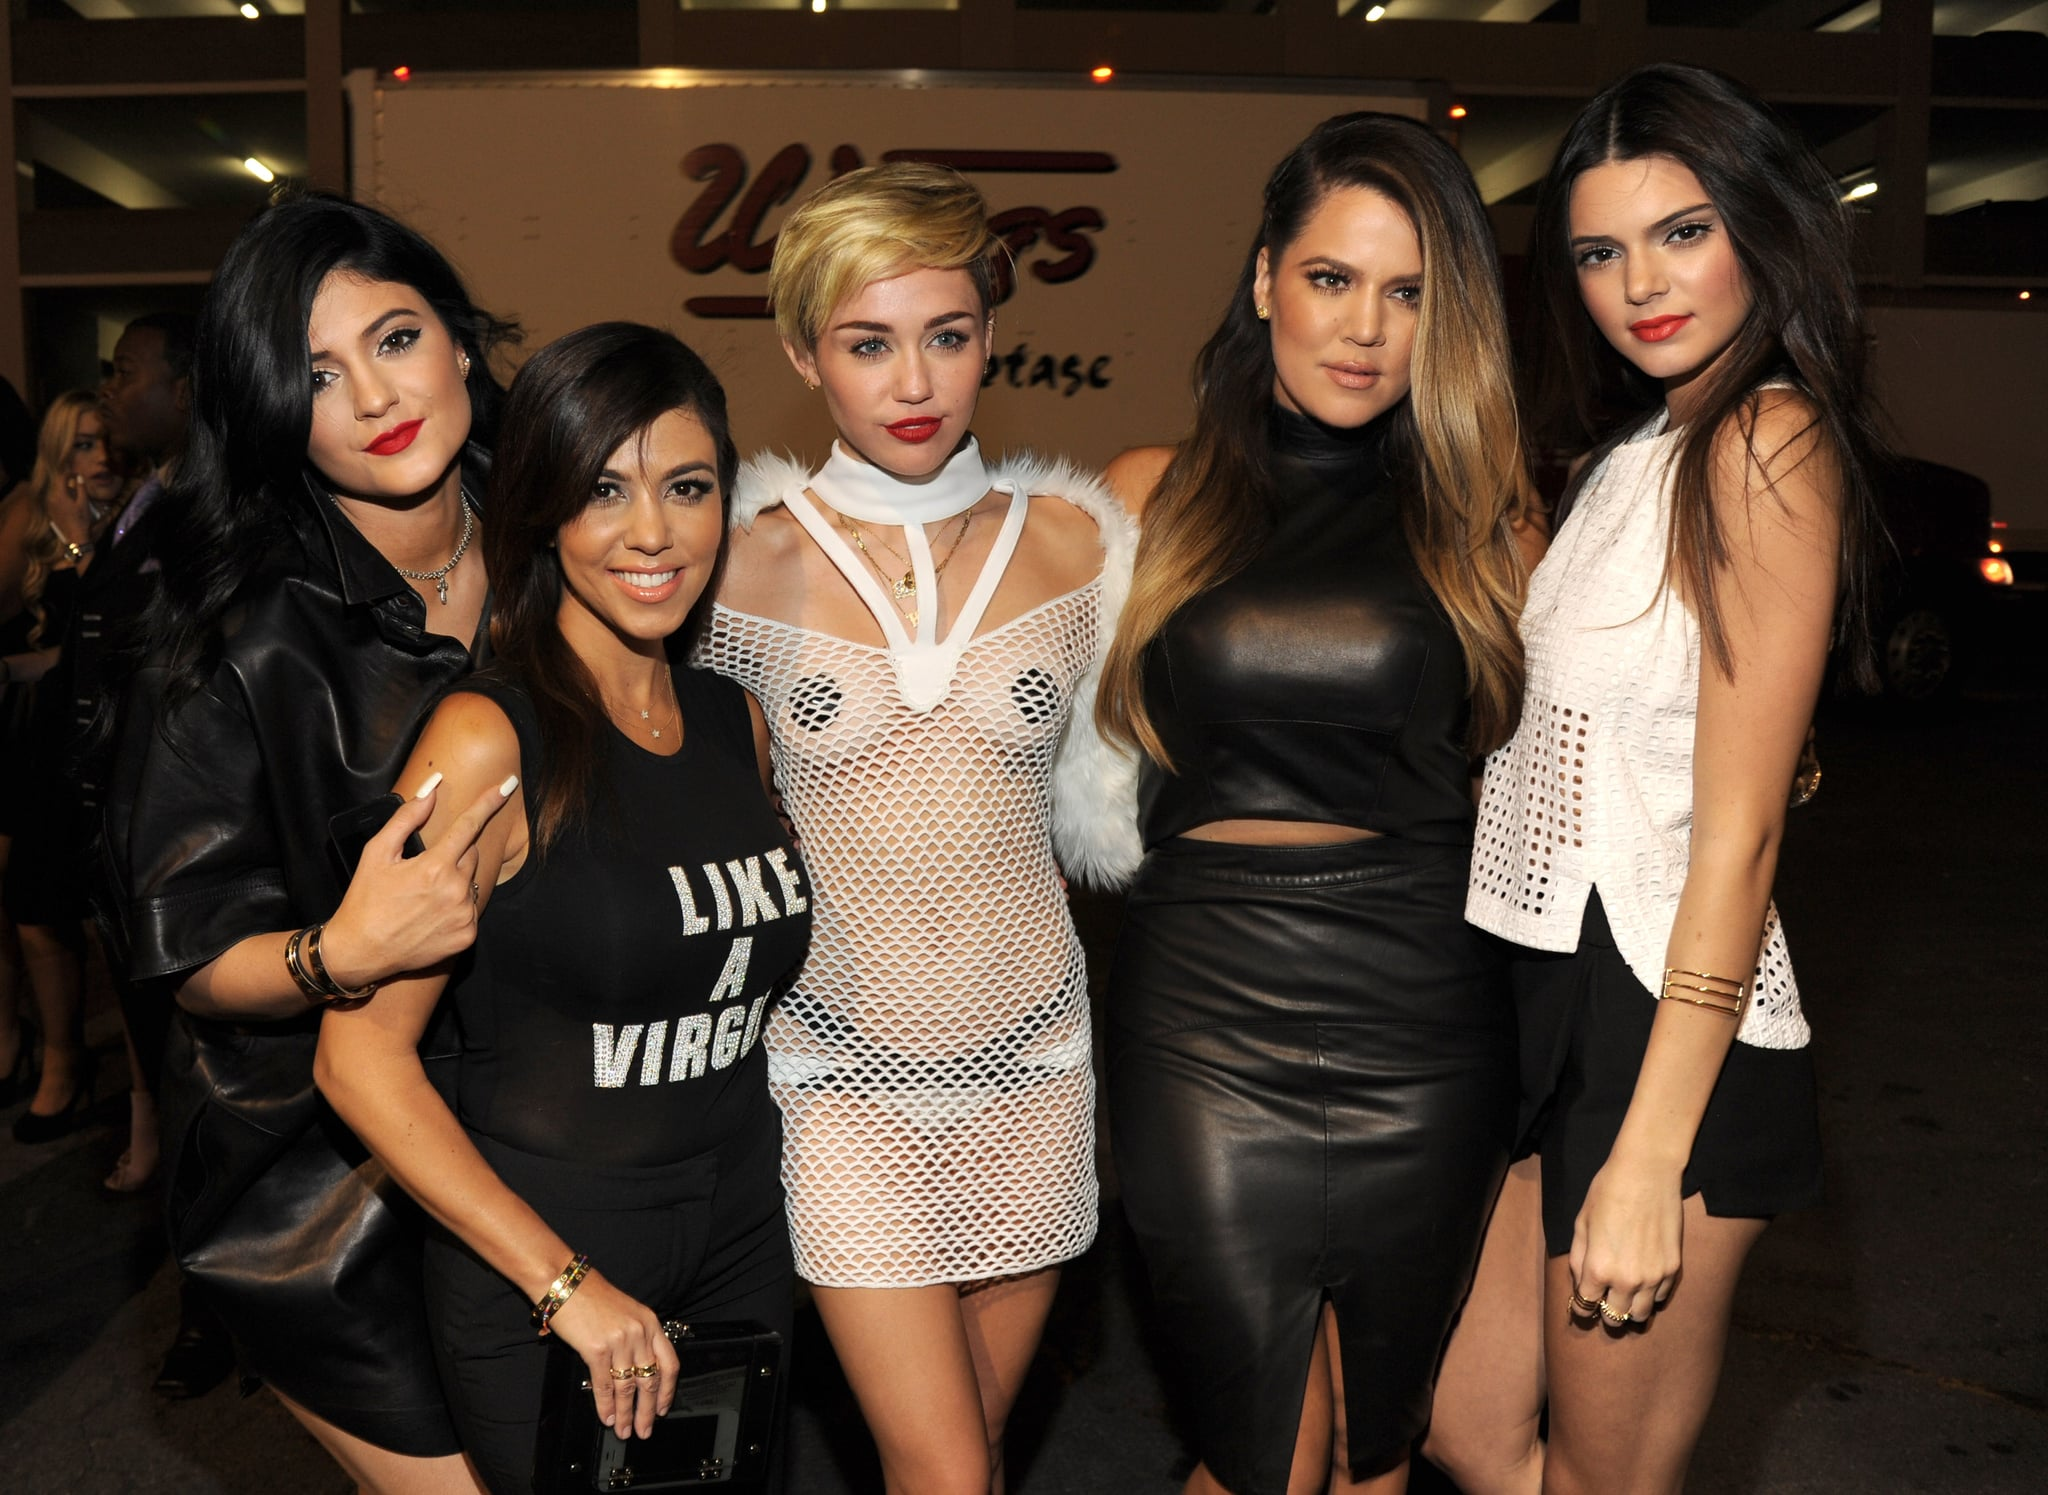 She started hanging out with Miley Cyrus sometimes.